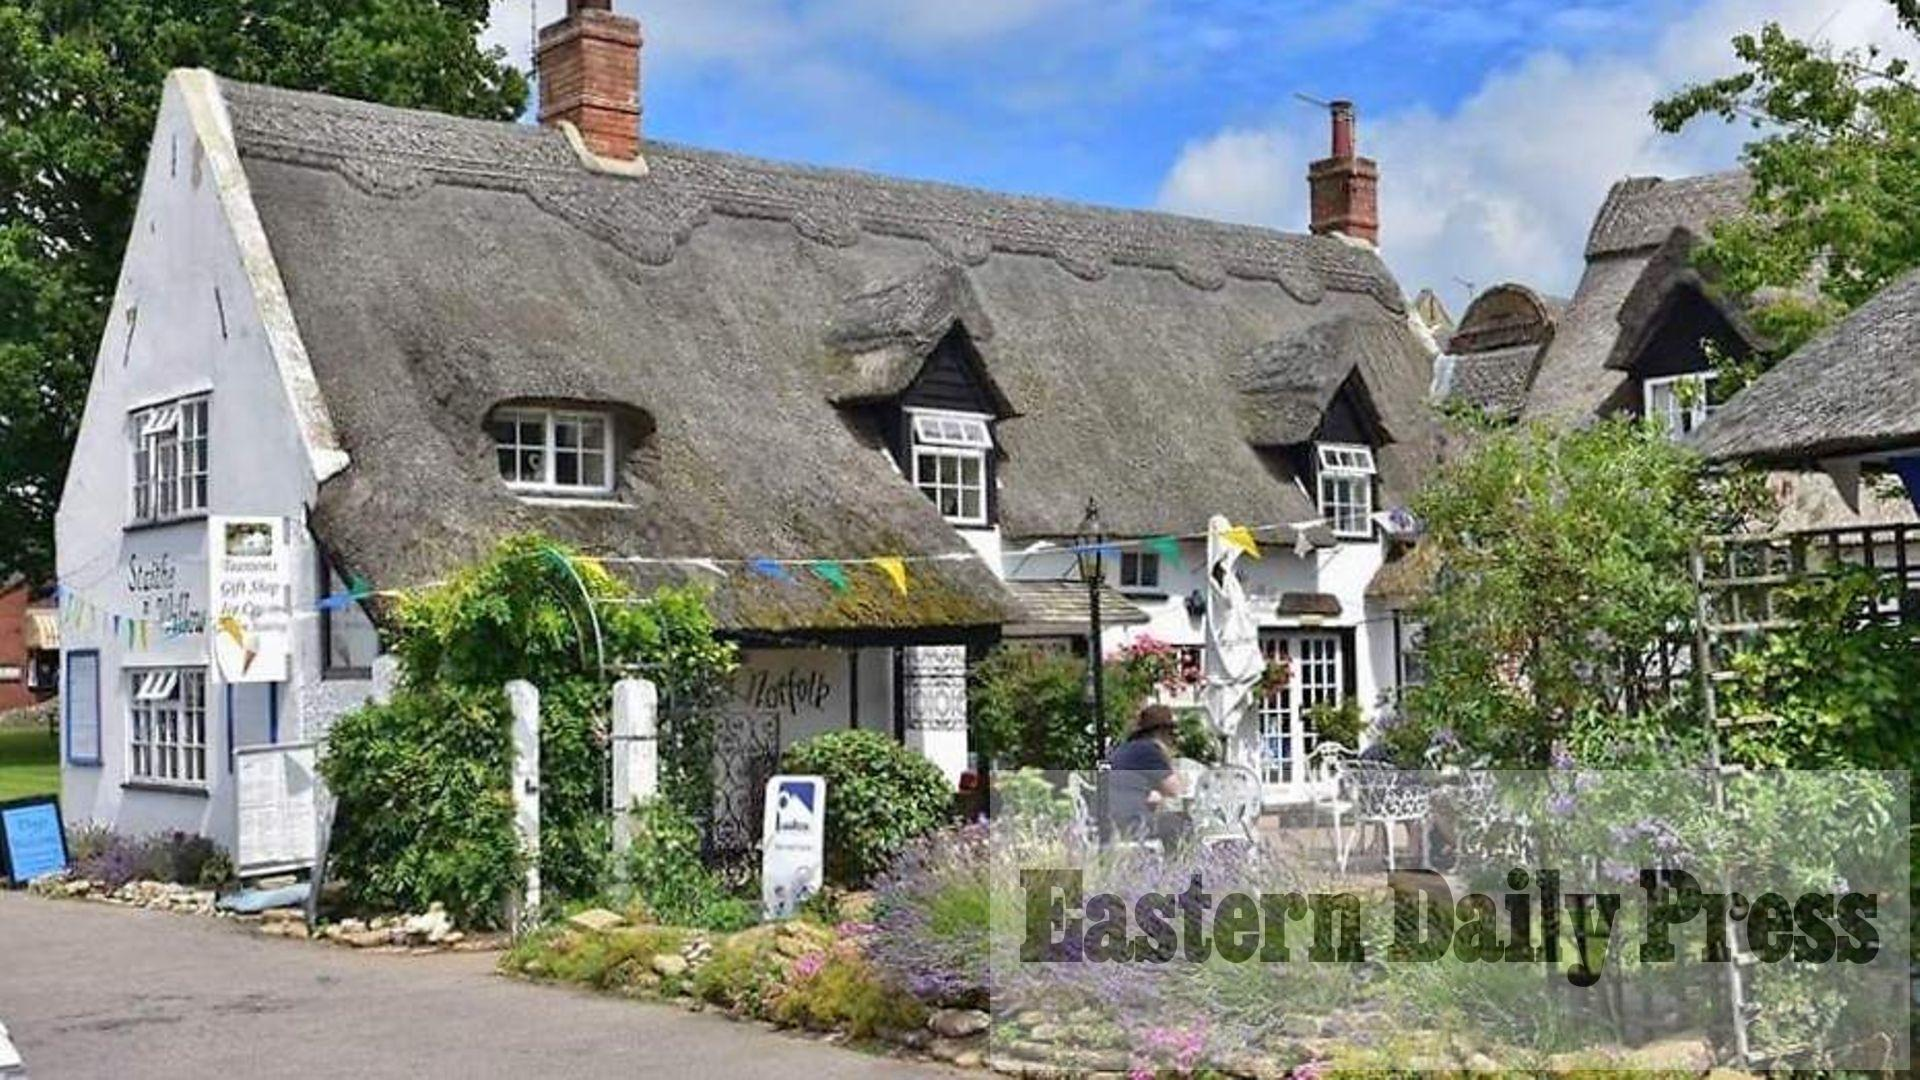 Pretty thatched cafe on Broads up for sale for £75,000